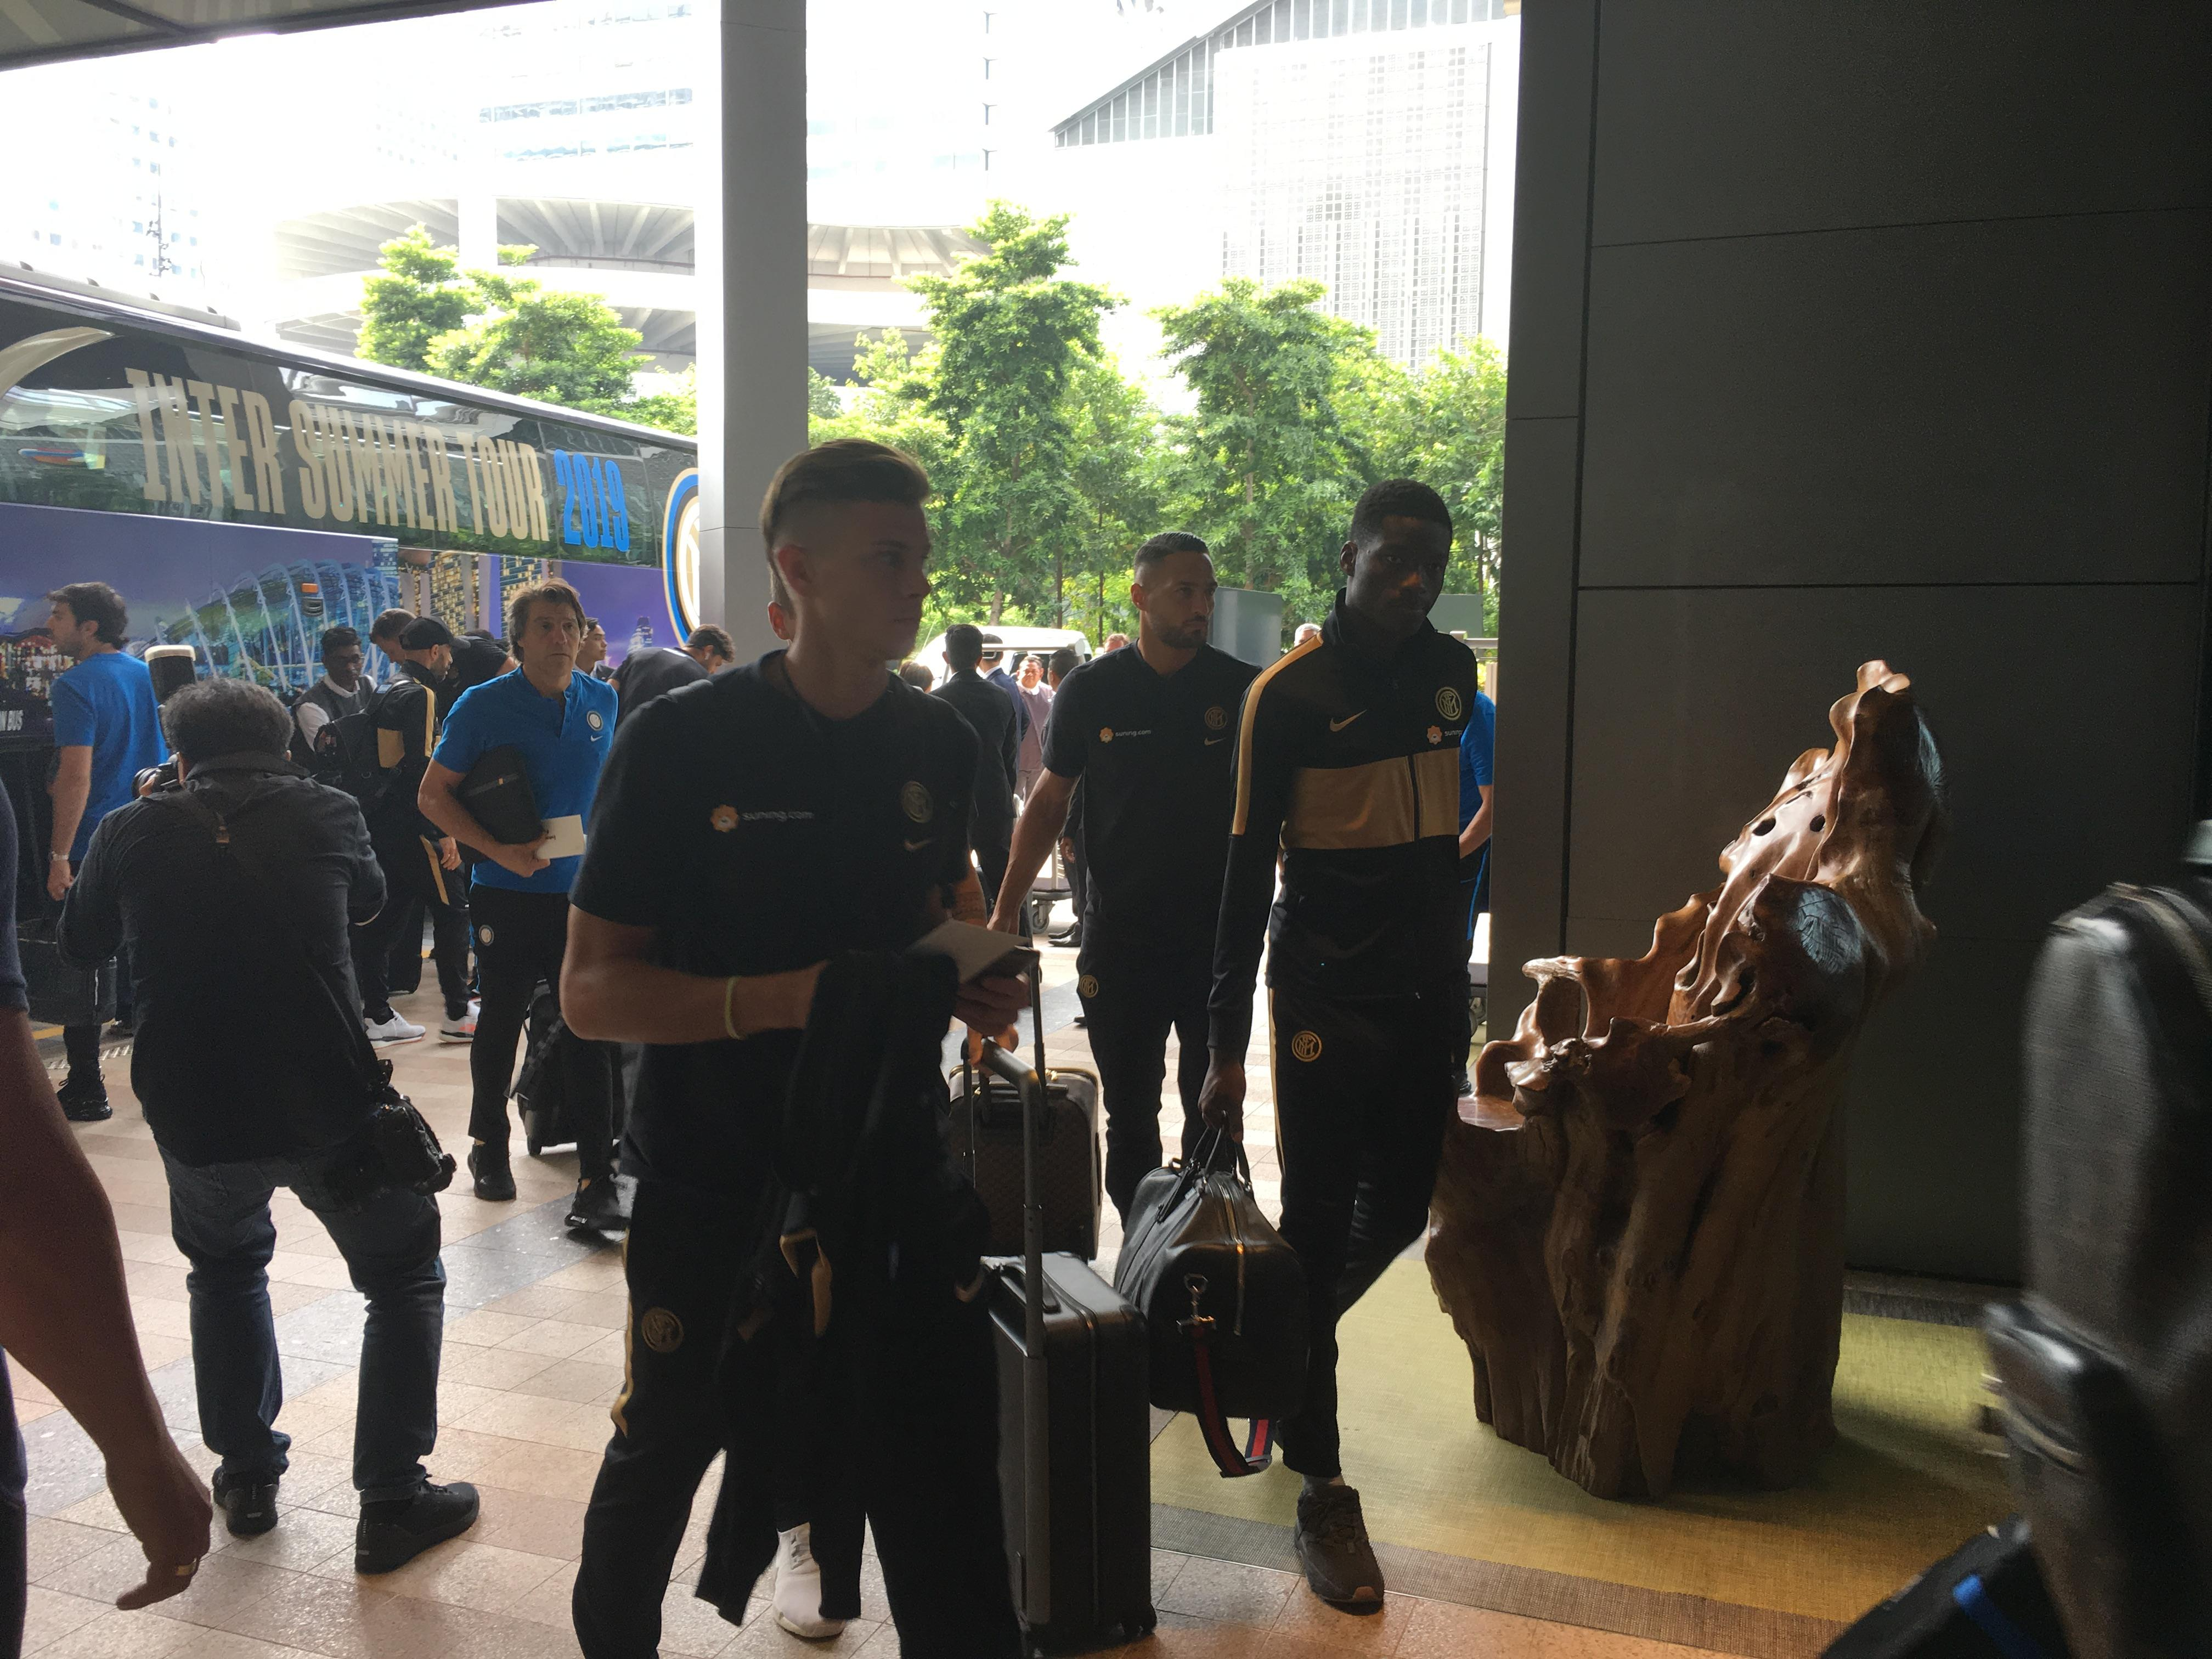 Italian giants Inter Milan in Singapore for International Champions Cup